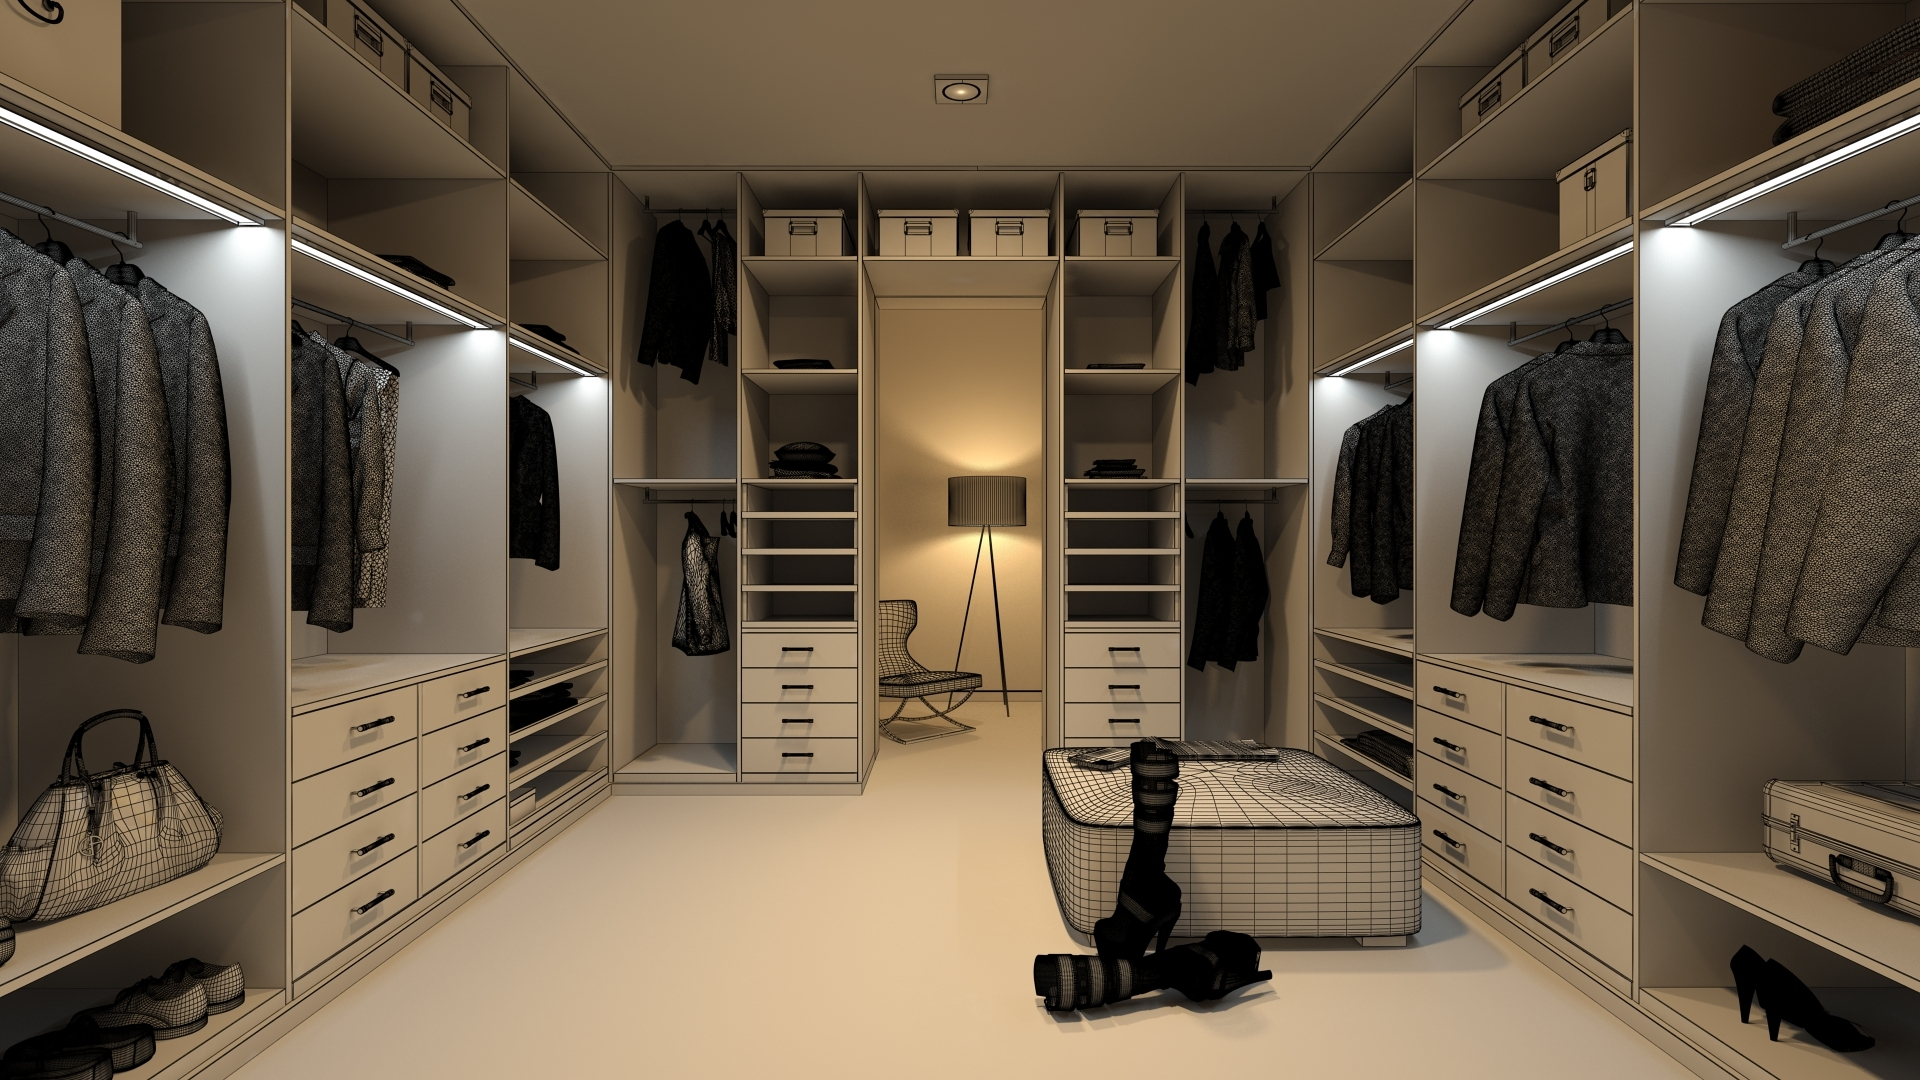 Dressing Room 0340 By Themerex 3docean